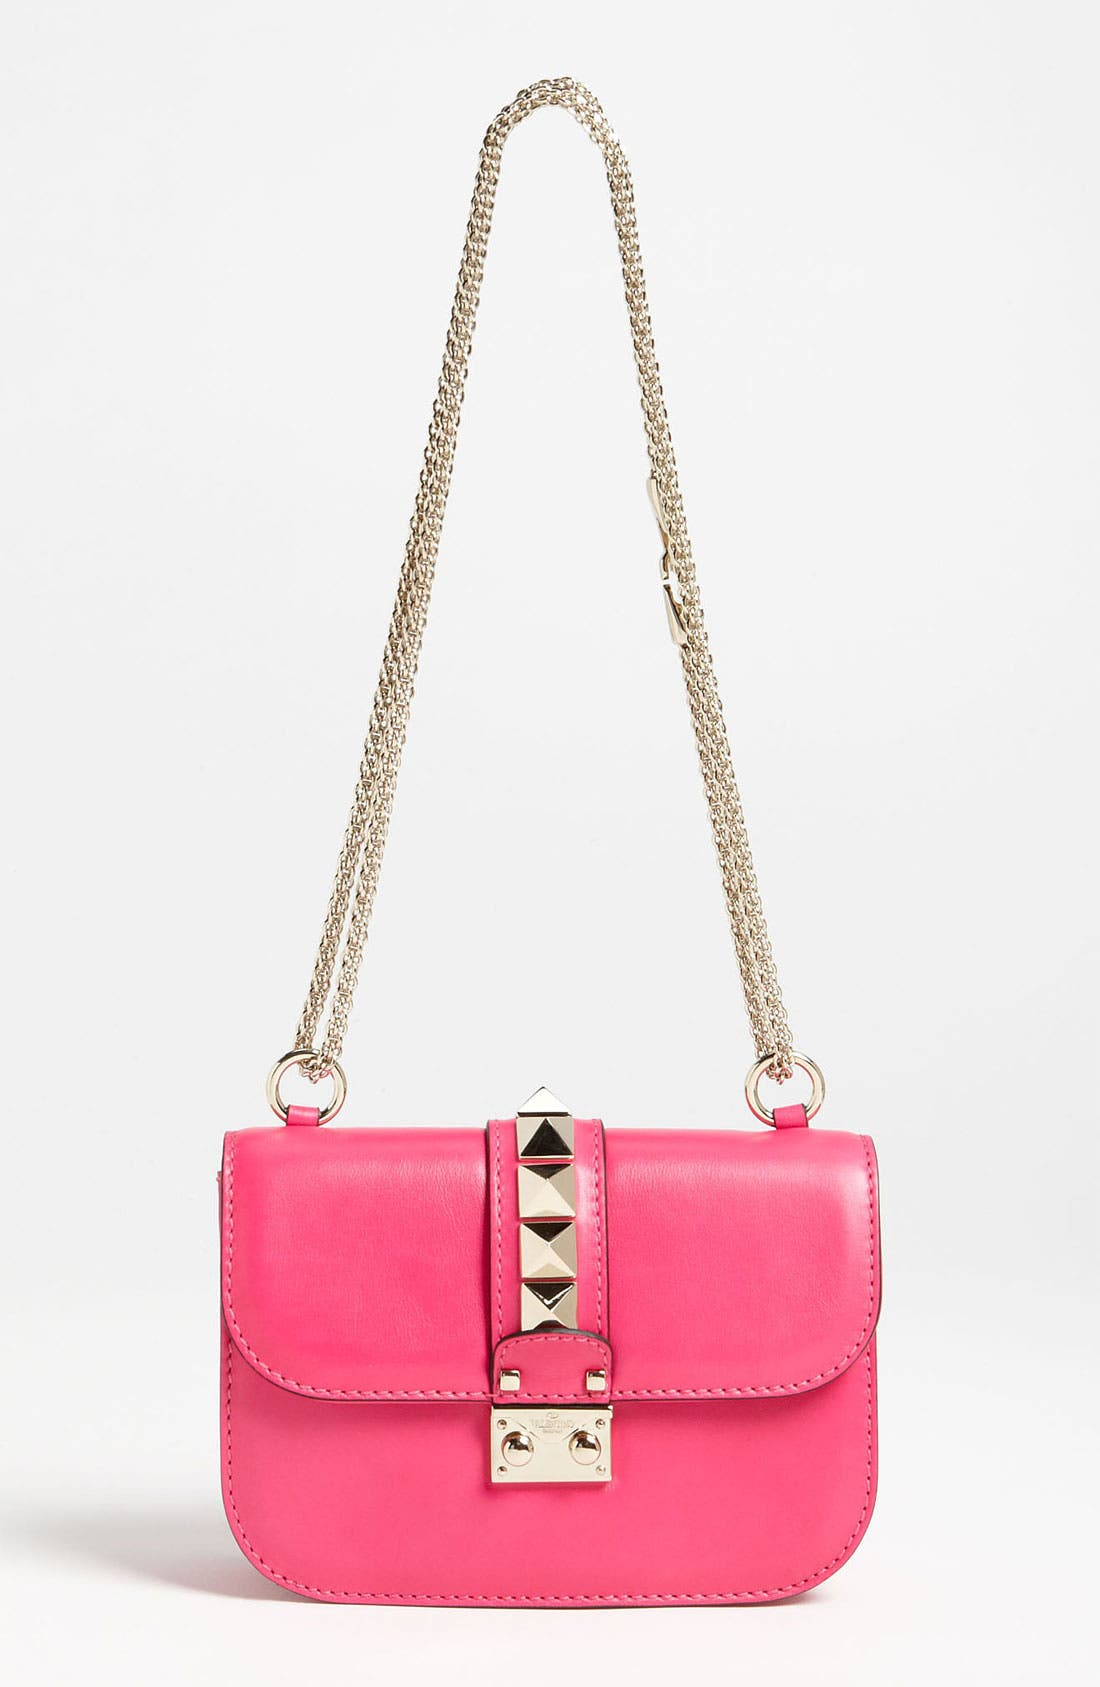 Main Image - Valentino 'Lock - Small' Leather Flap Bag